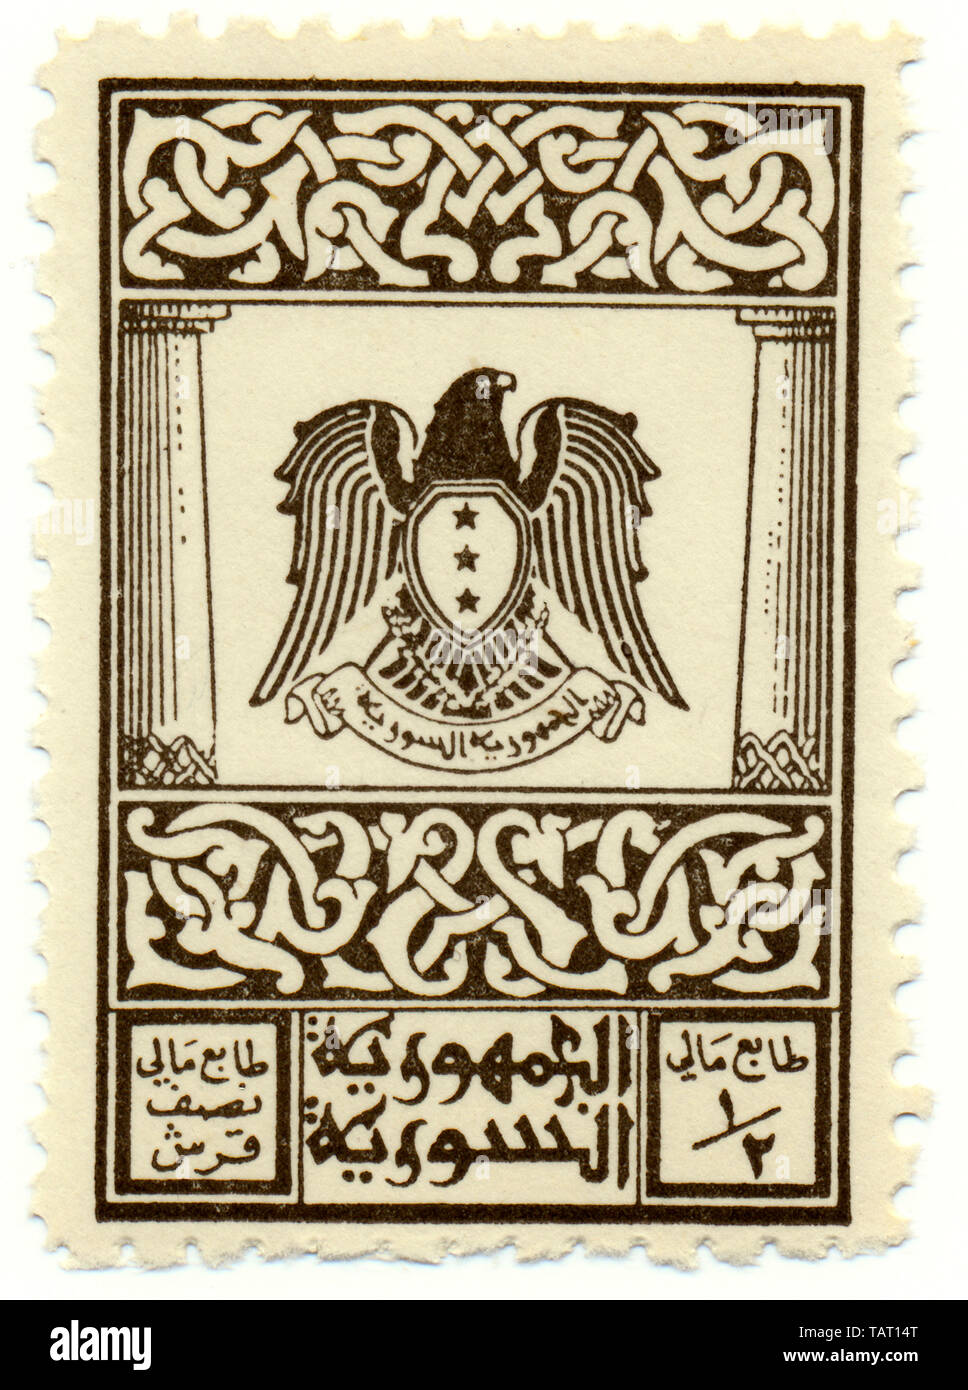 Historic postage stamps from Syria, national coat of arms with an eagle, Syrian Arab Republic, Historische Briefmarken aus Syrien, Staatswappen Adler, Arabische Republik Syrien - Stock Image